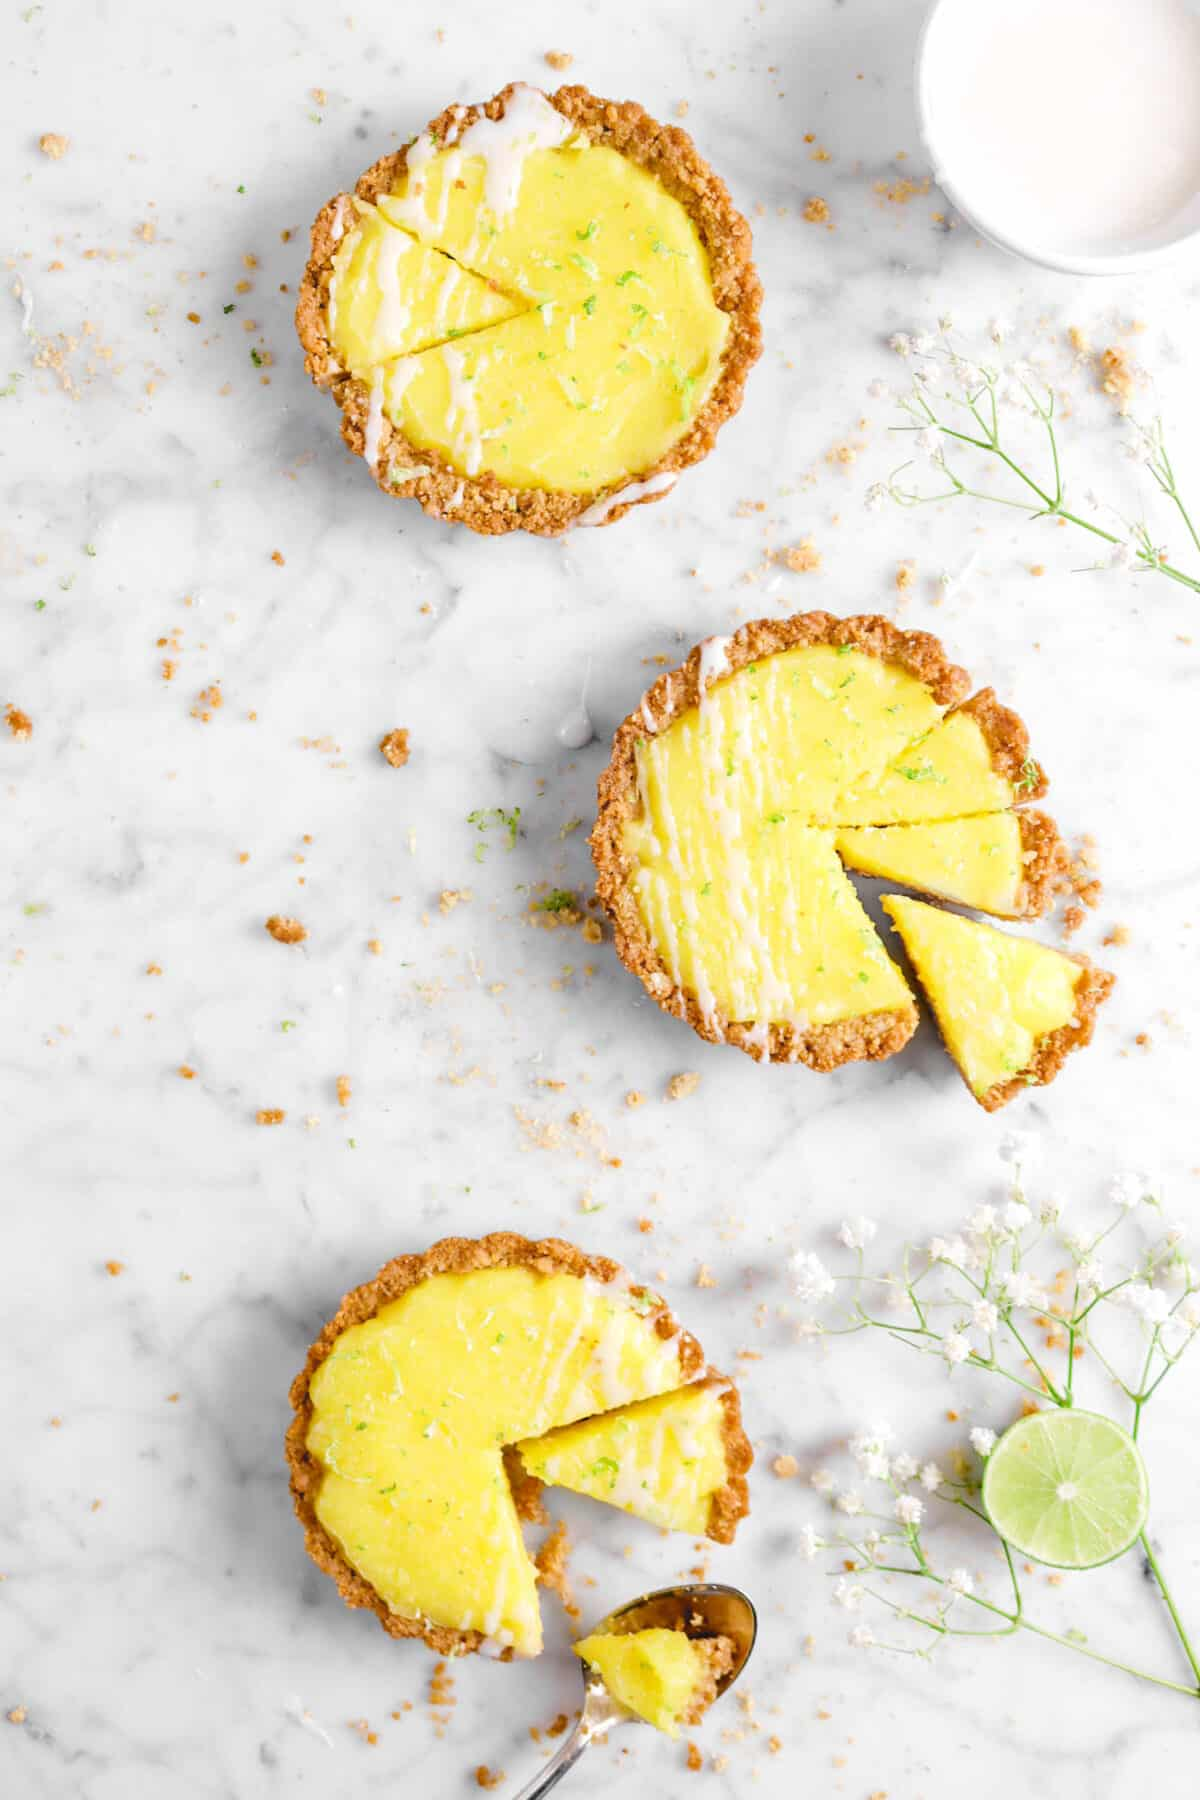 three slices key lime pies on marble with crumbs, flowers, and glzr